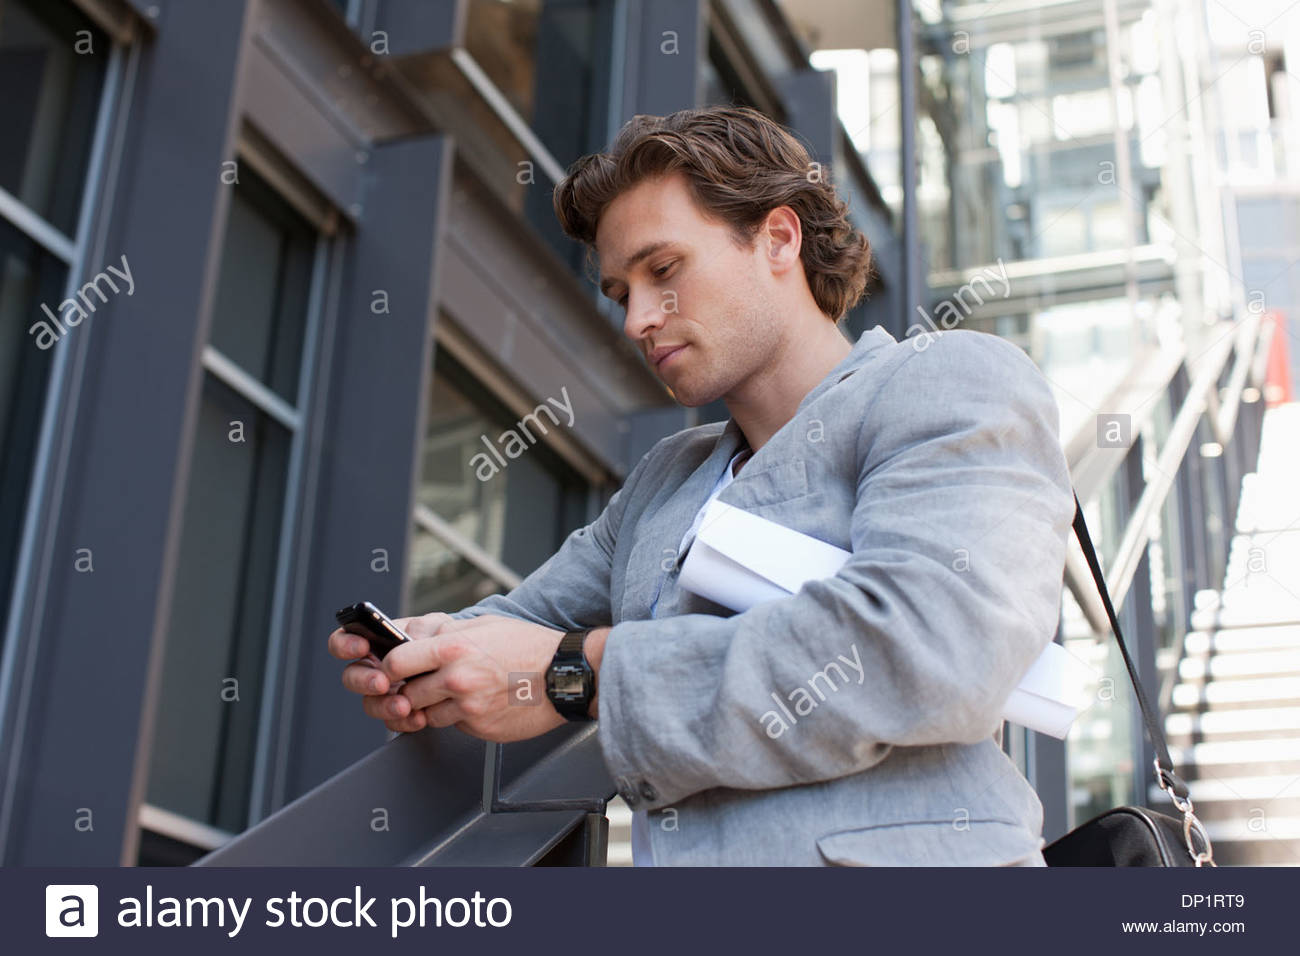 Man using cell phone on stairs - Stock Image